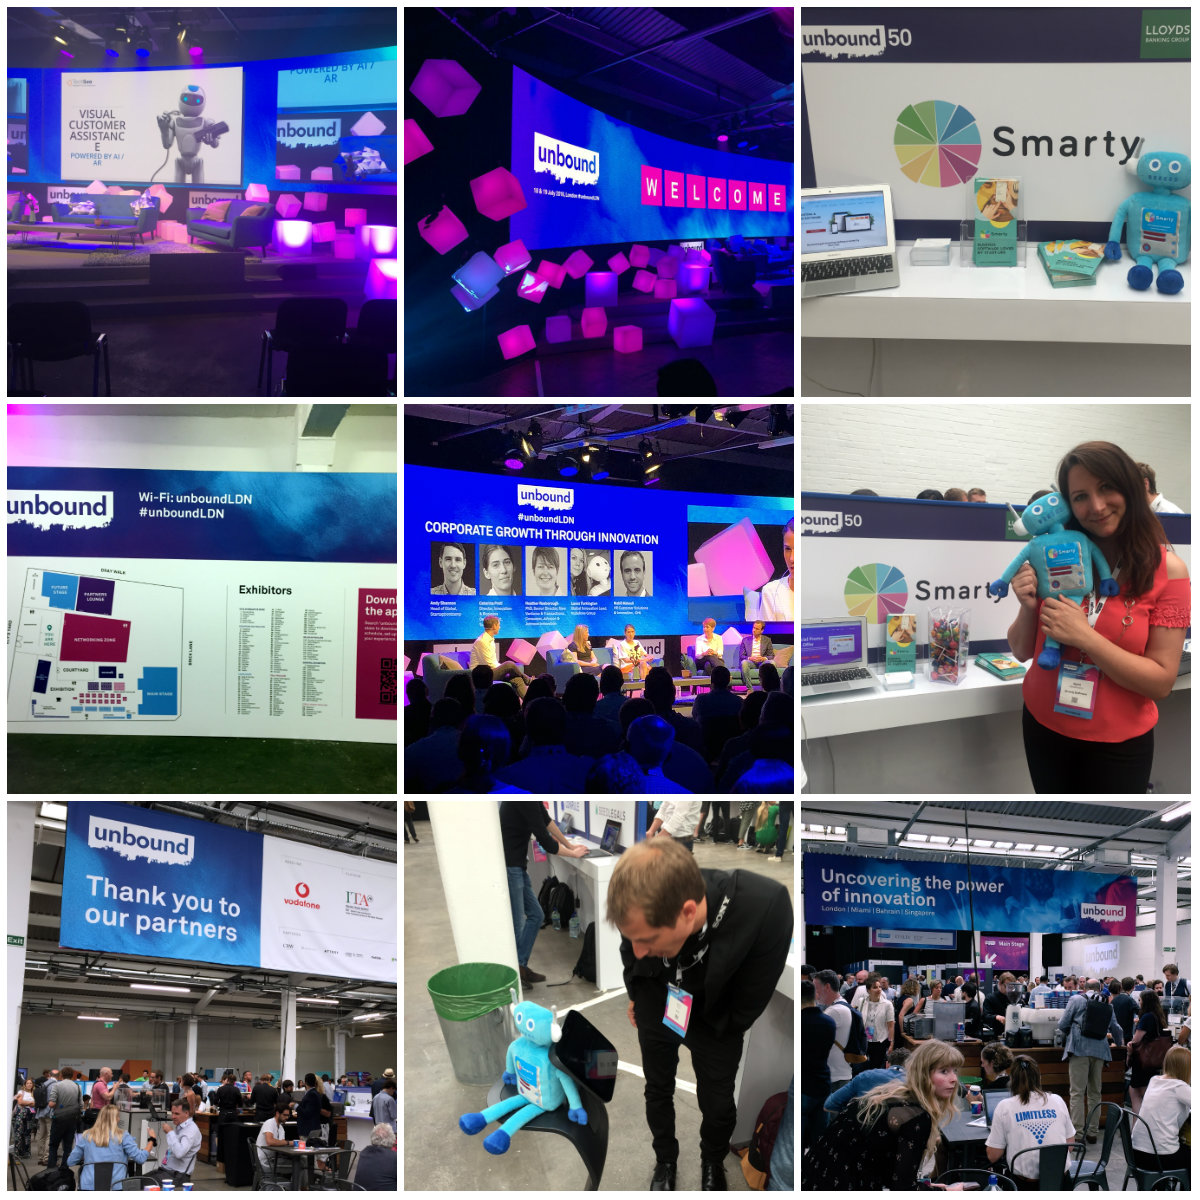 Smarty Software Immersed In Innovation At Unbound 2018